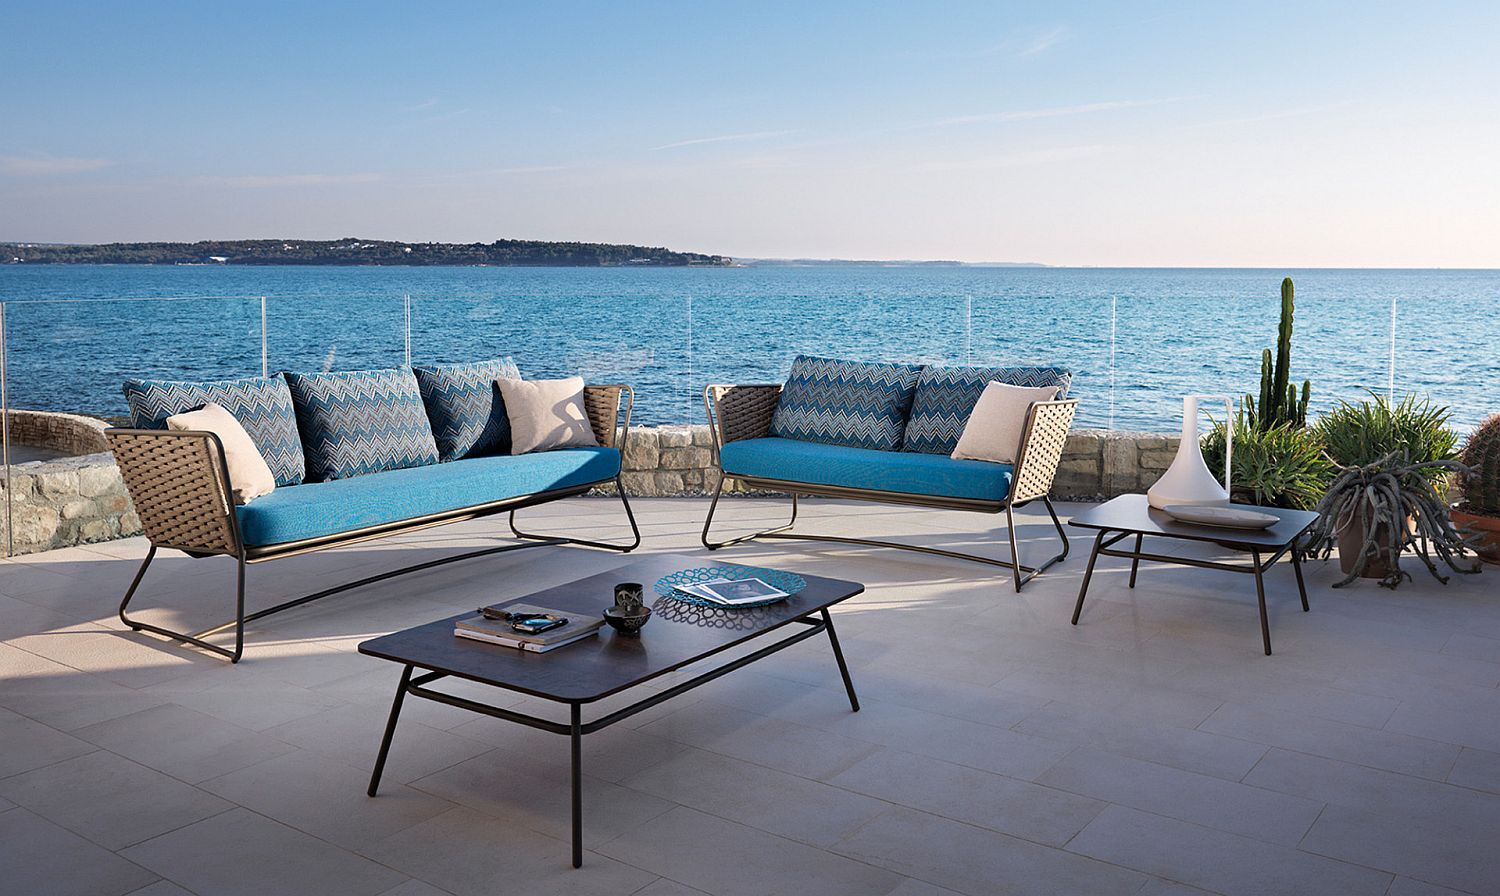 Outdoor sofas and armchairs from the Roberti Rattan Collection